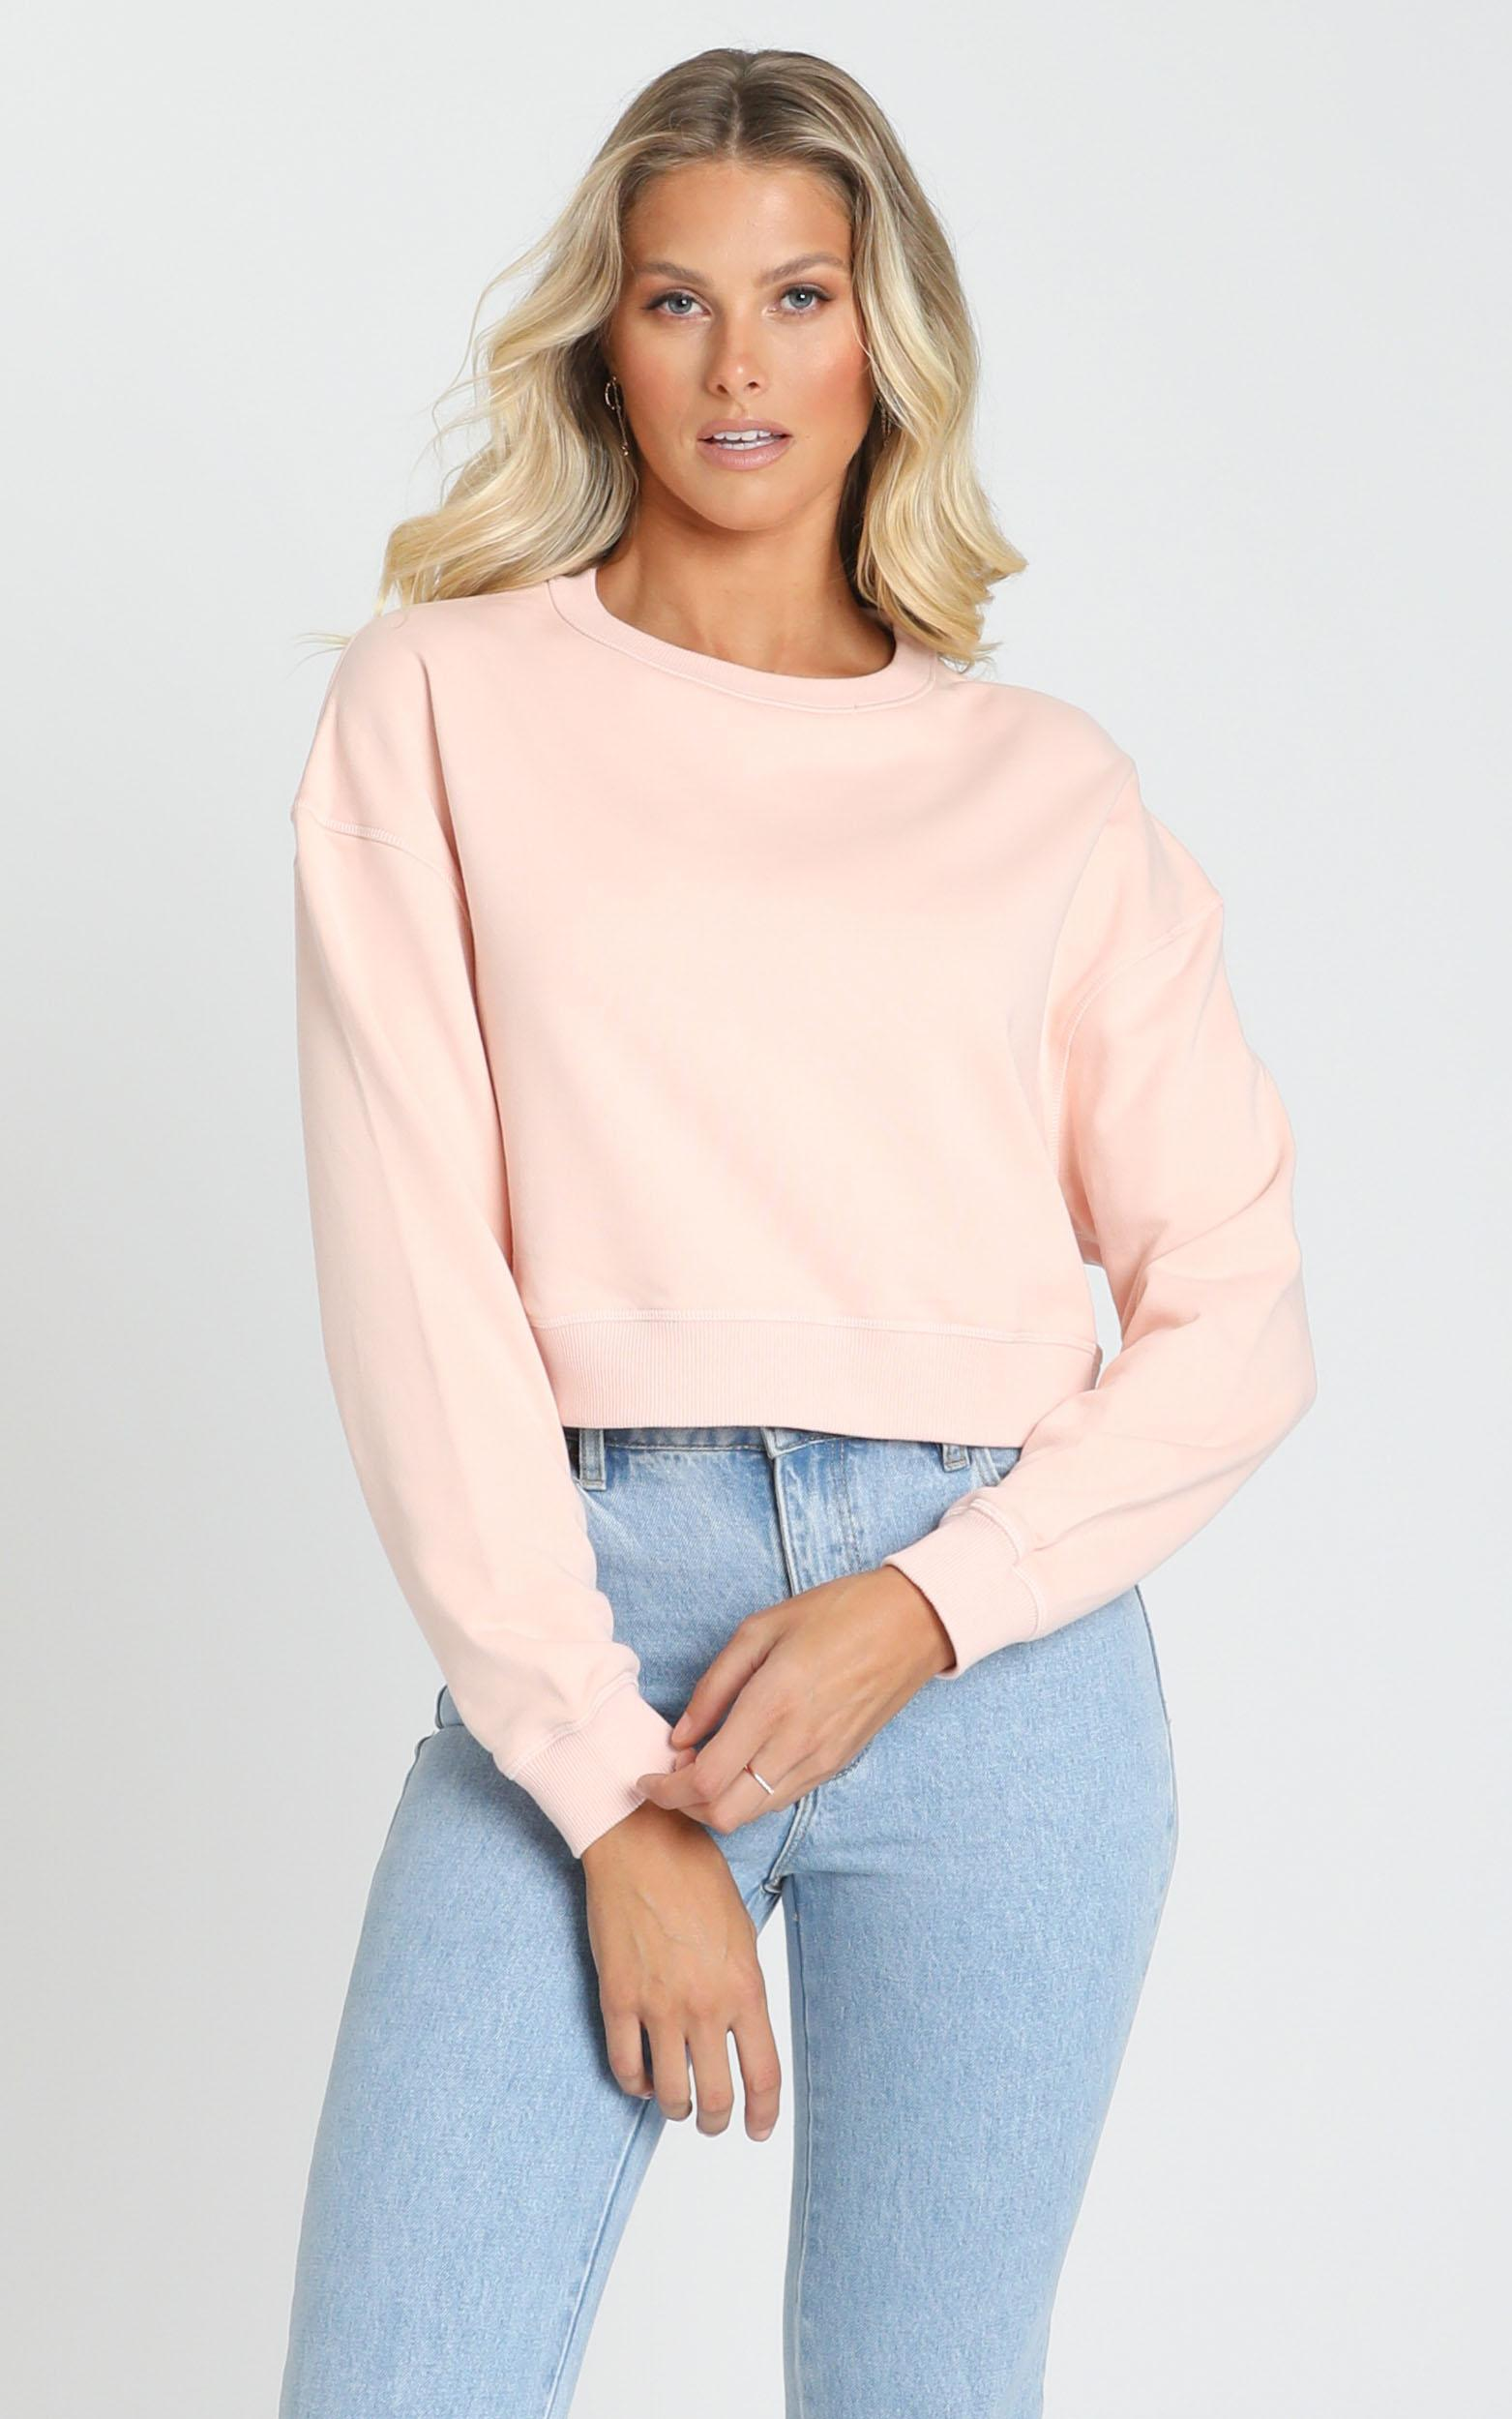 AS Colour - Crop Crew in Pale Pink - XS, Pink, hi-res image number null